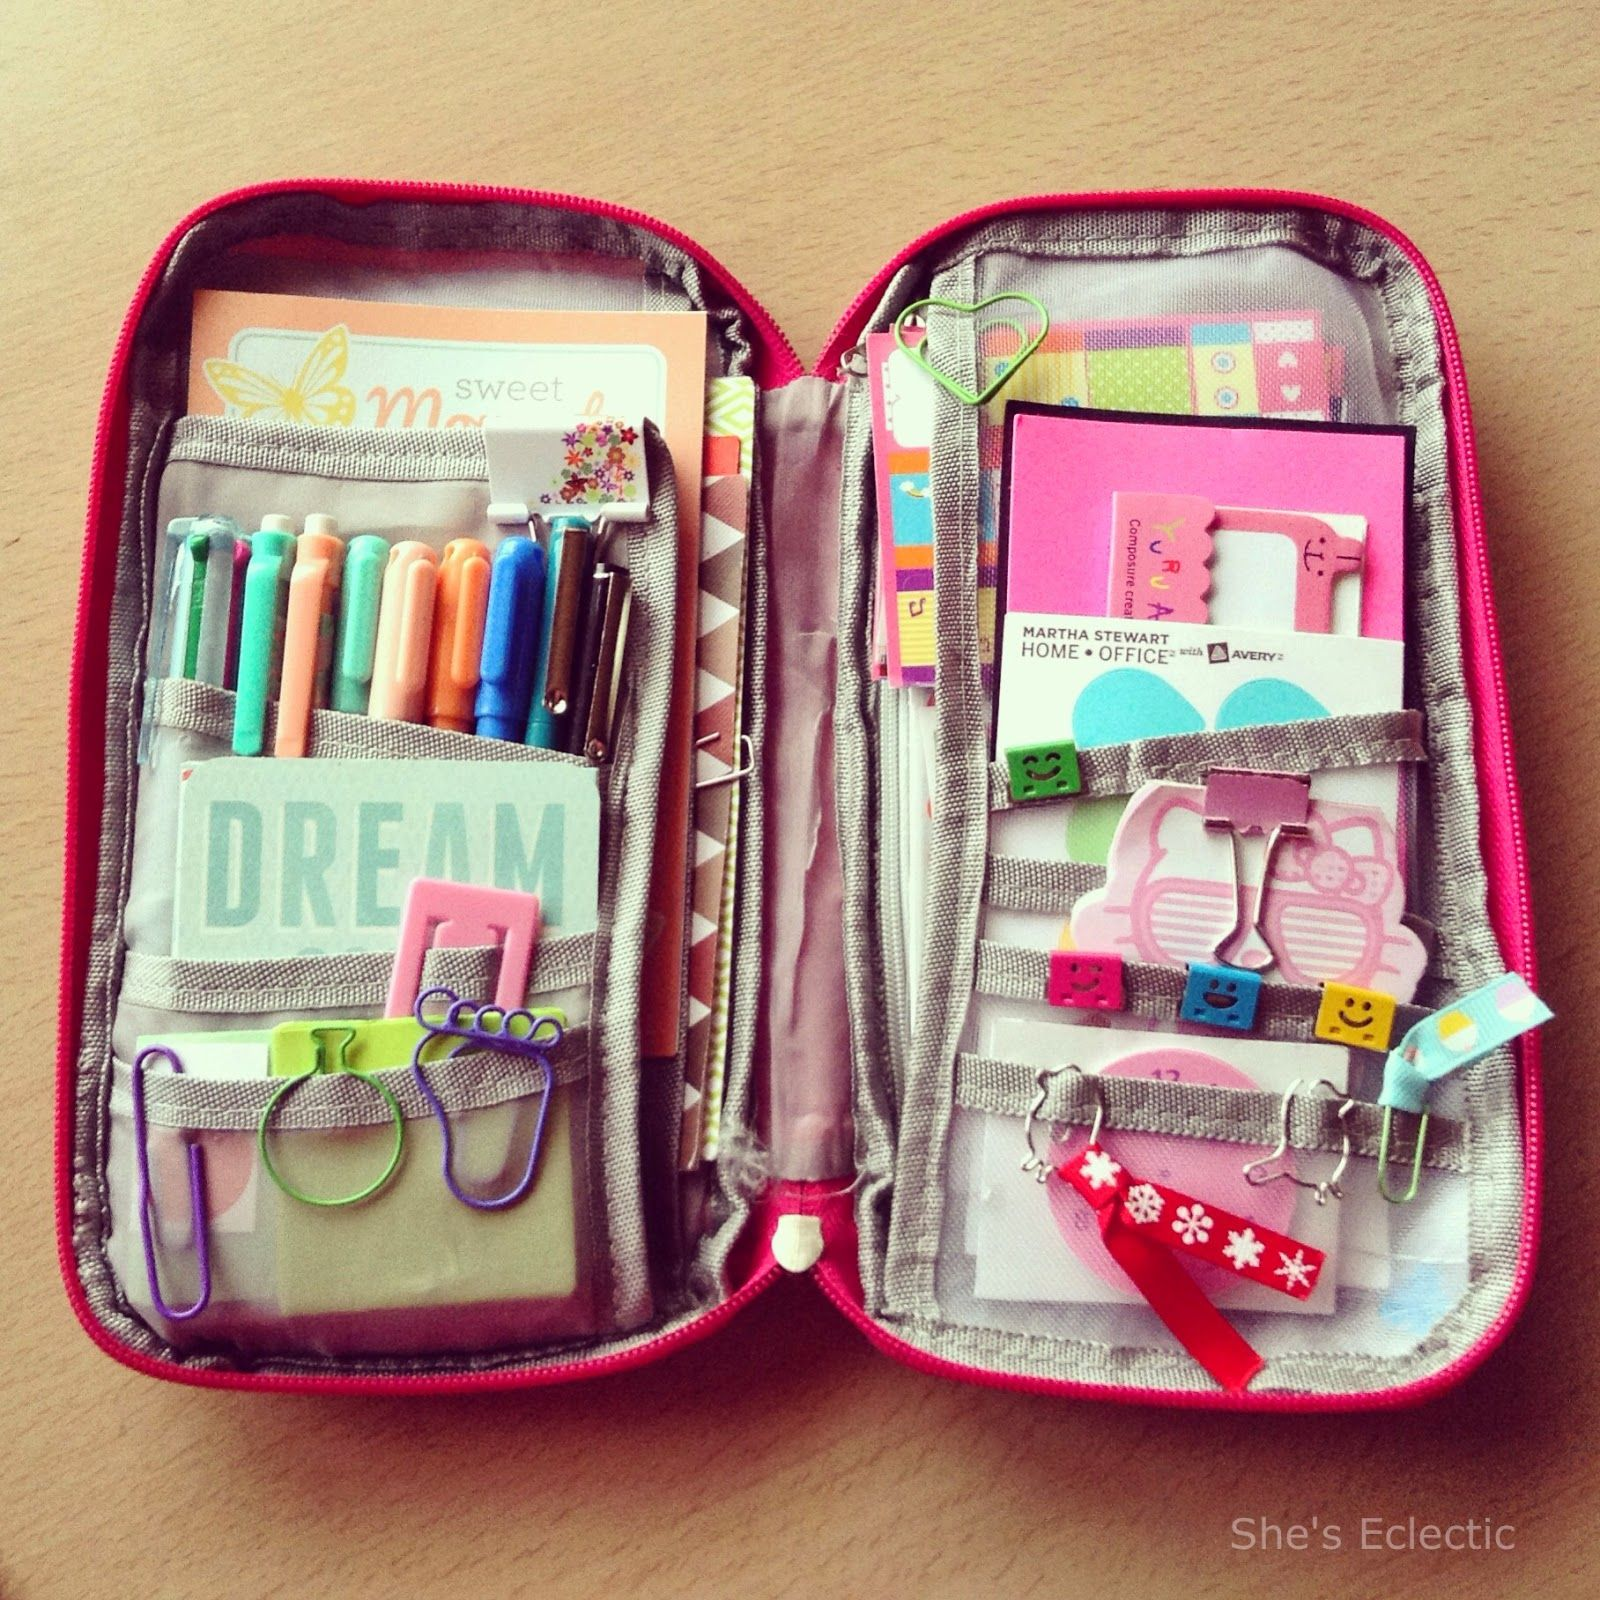 She's Eclectic National Stationery Week pencil case day